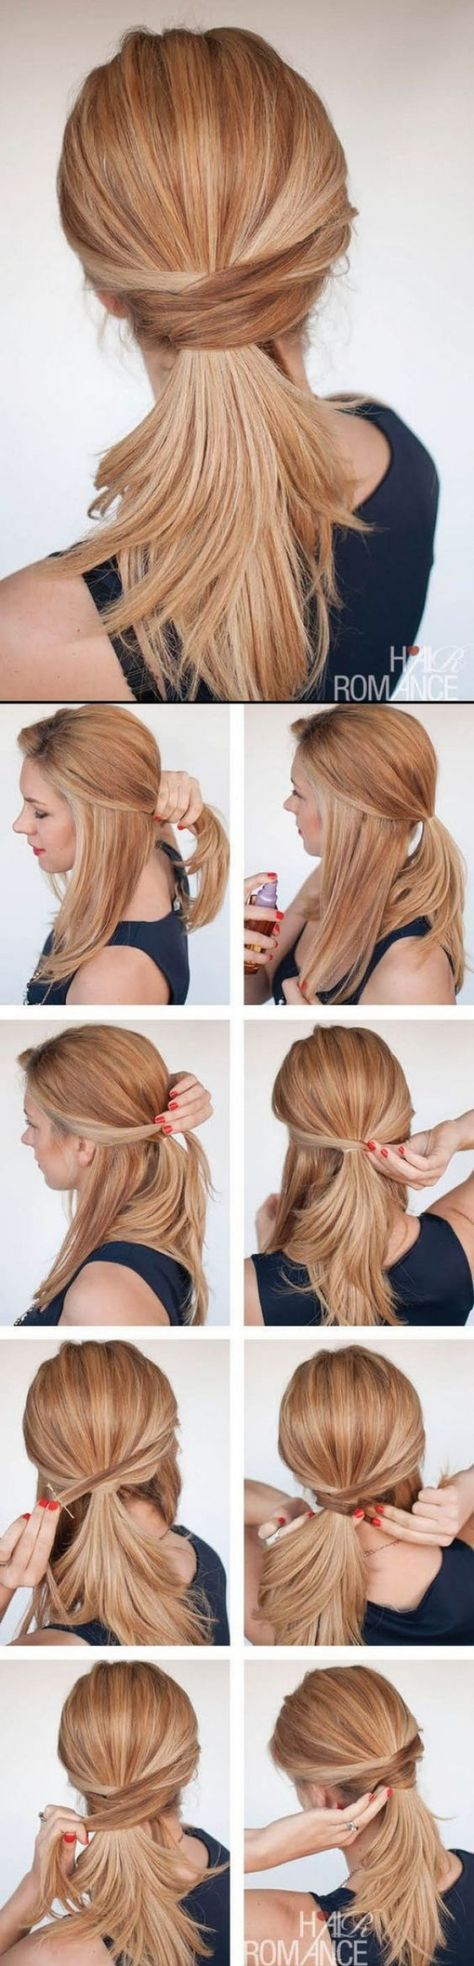 I think I can make this in 30 secs, what do you say? ||| 60 Simple Five Minute Hairstyles for Office Women (Complete Tutorials)